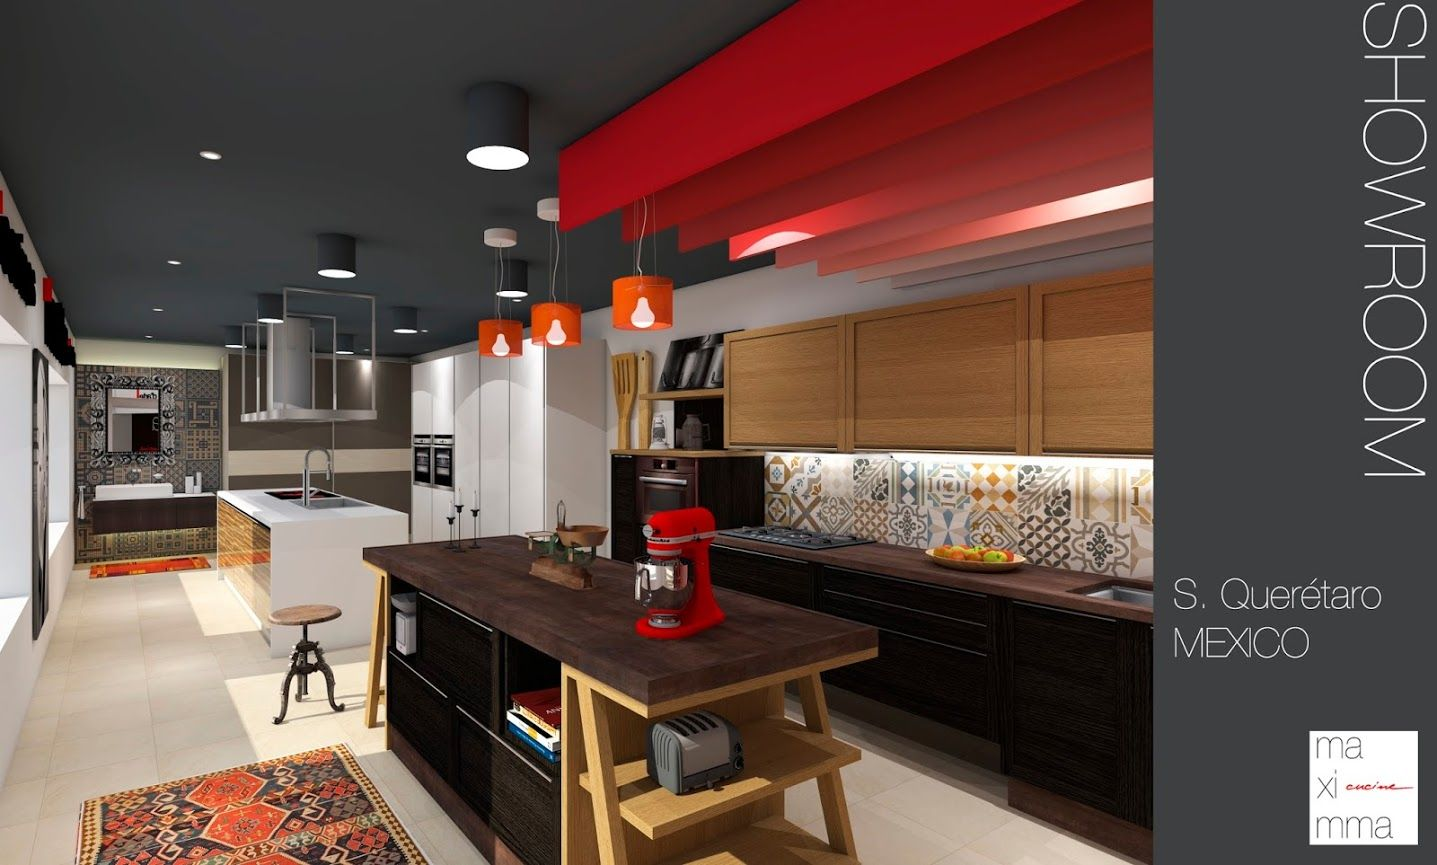 Sketchup Pro - 3d4every1 - Comunidad - Google+ | Kitchen ...